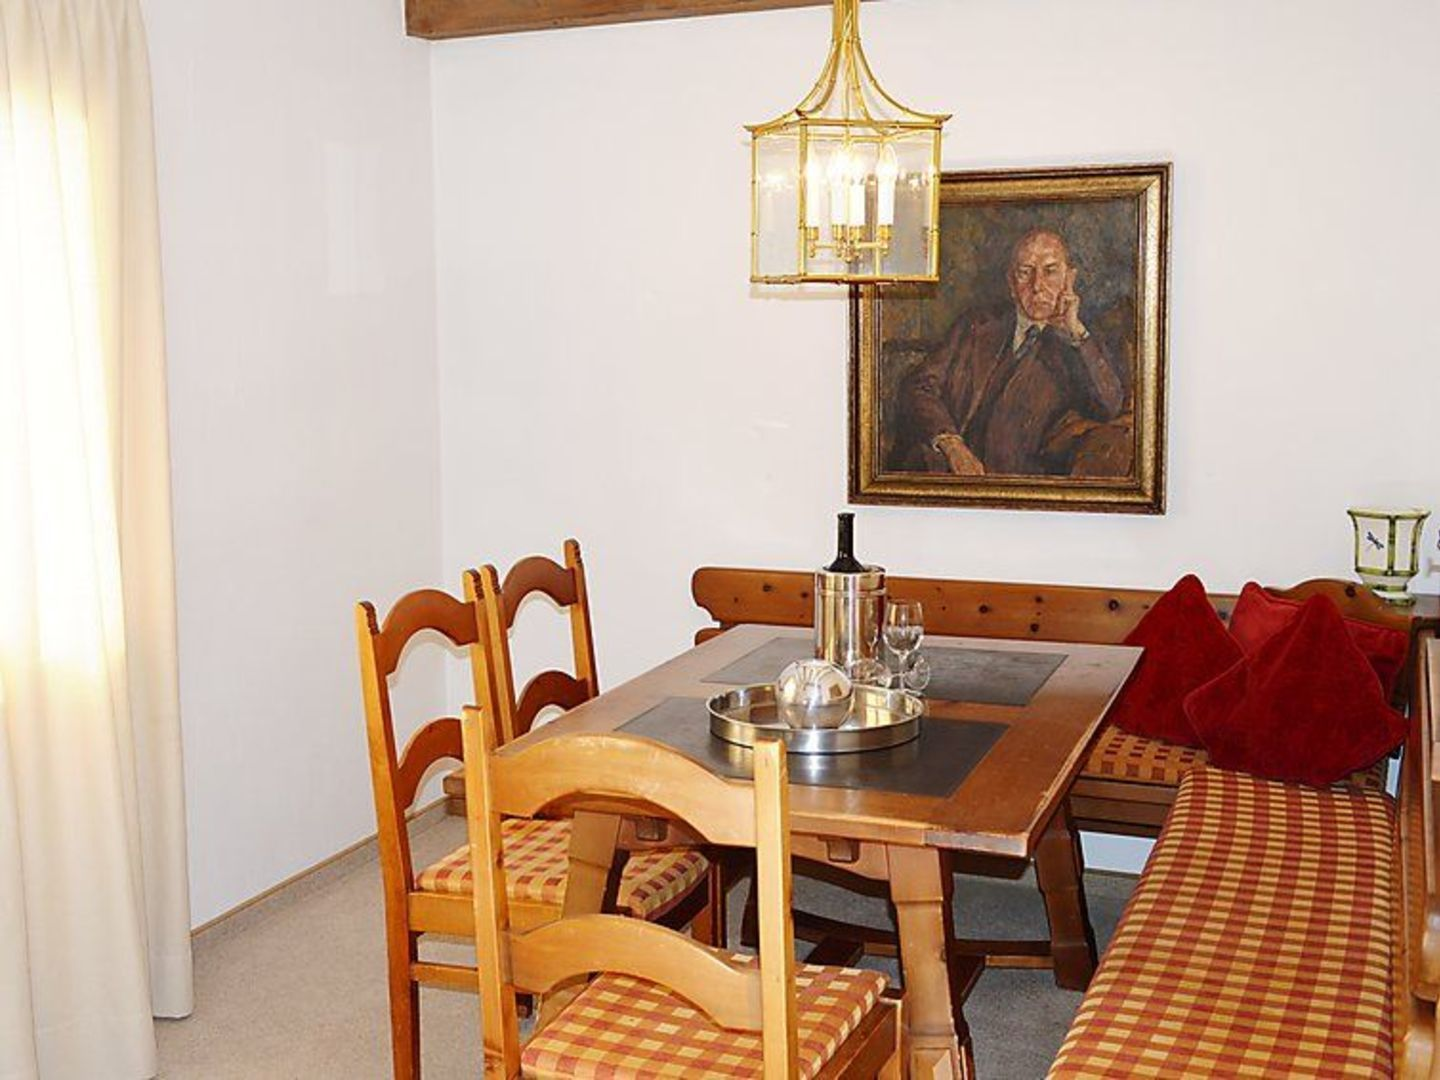 Rental apartment in Silvaplana Surlej